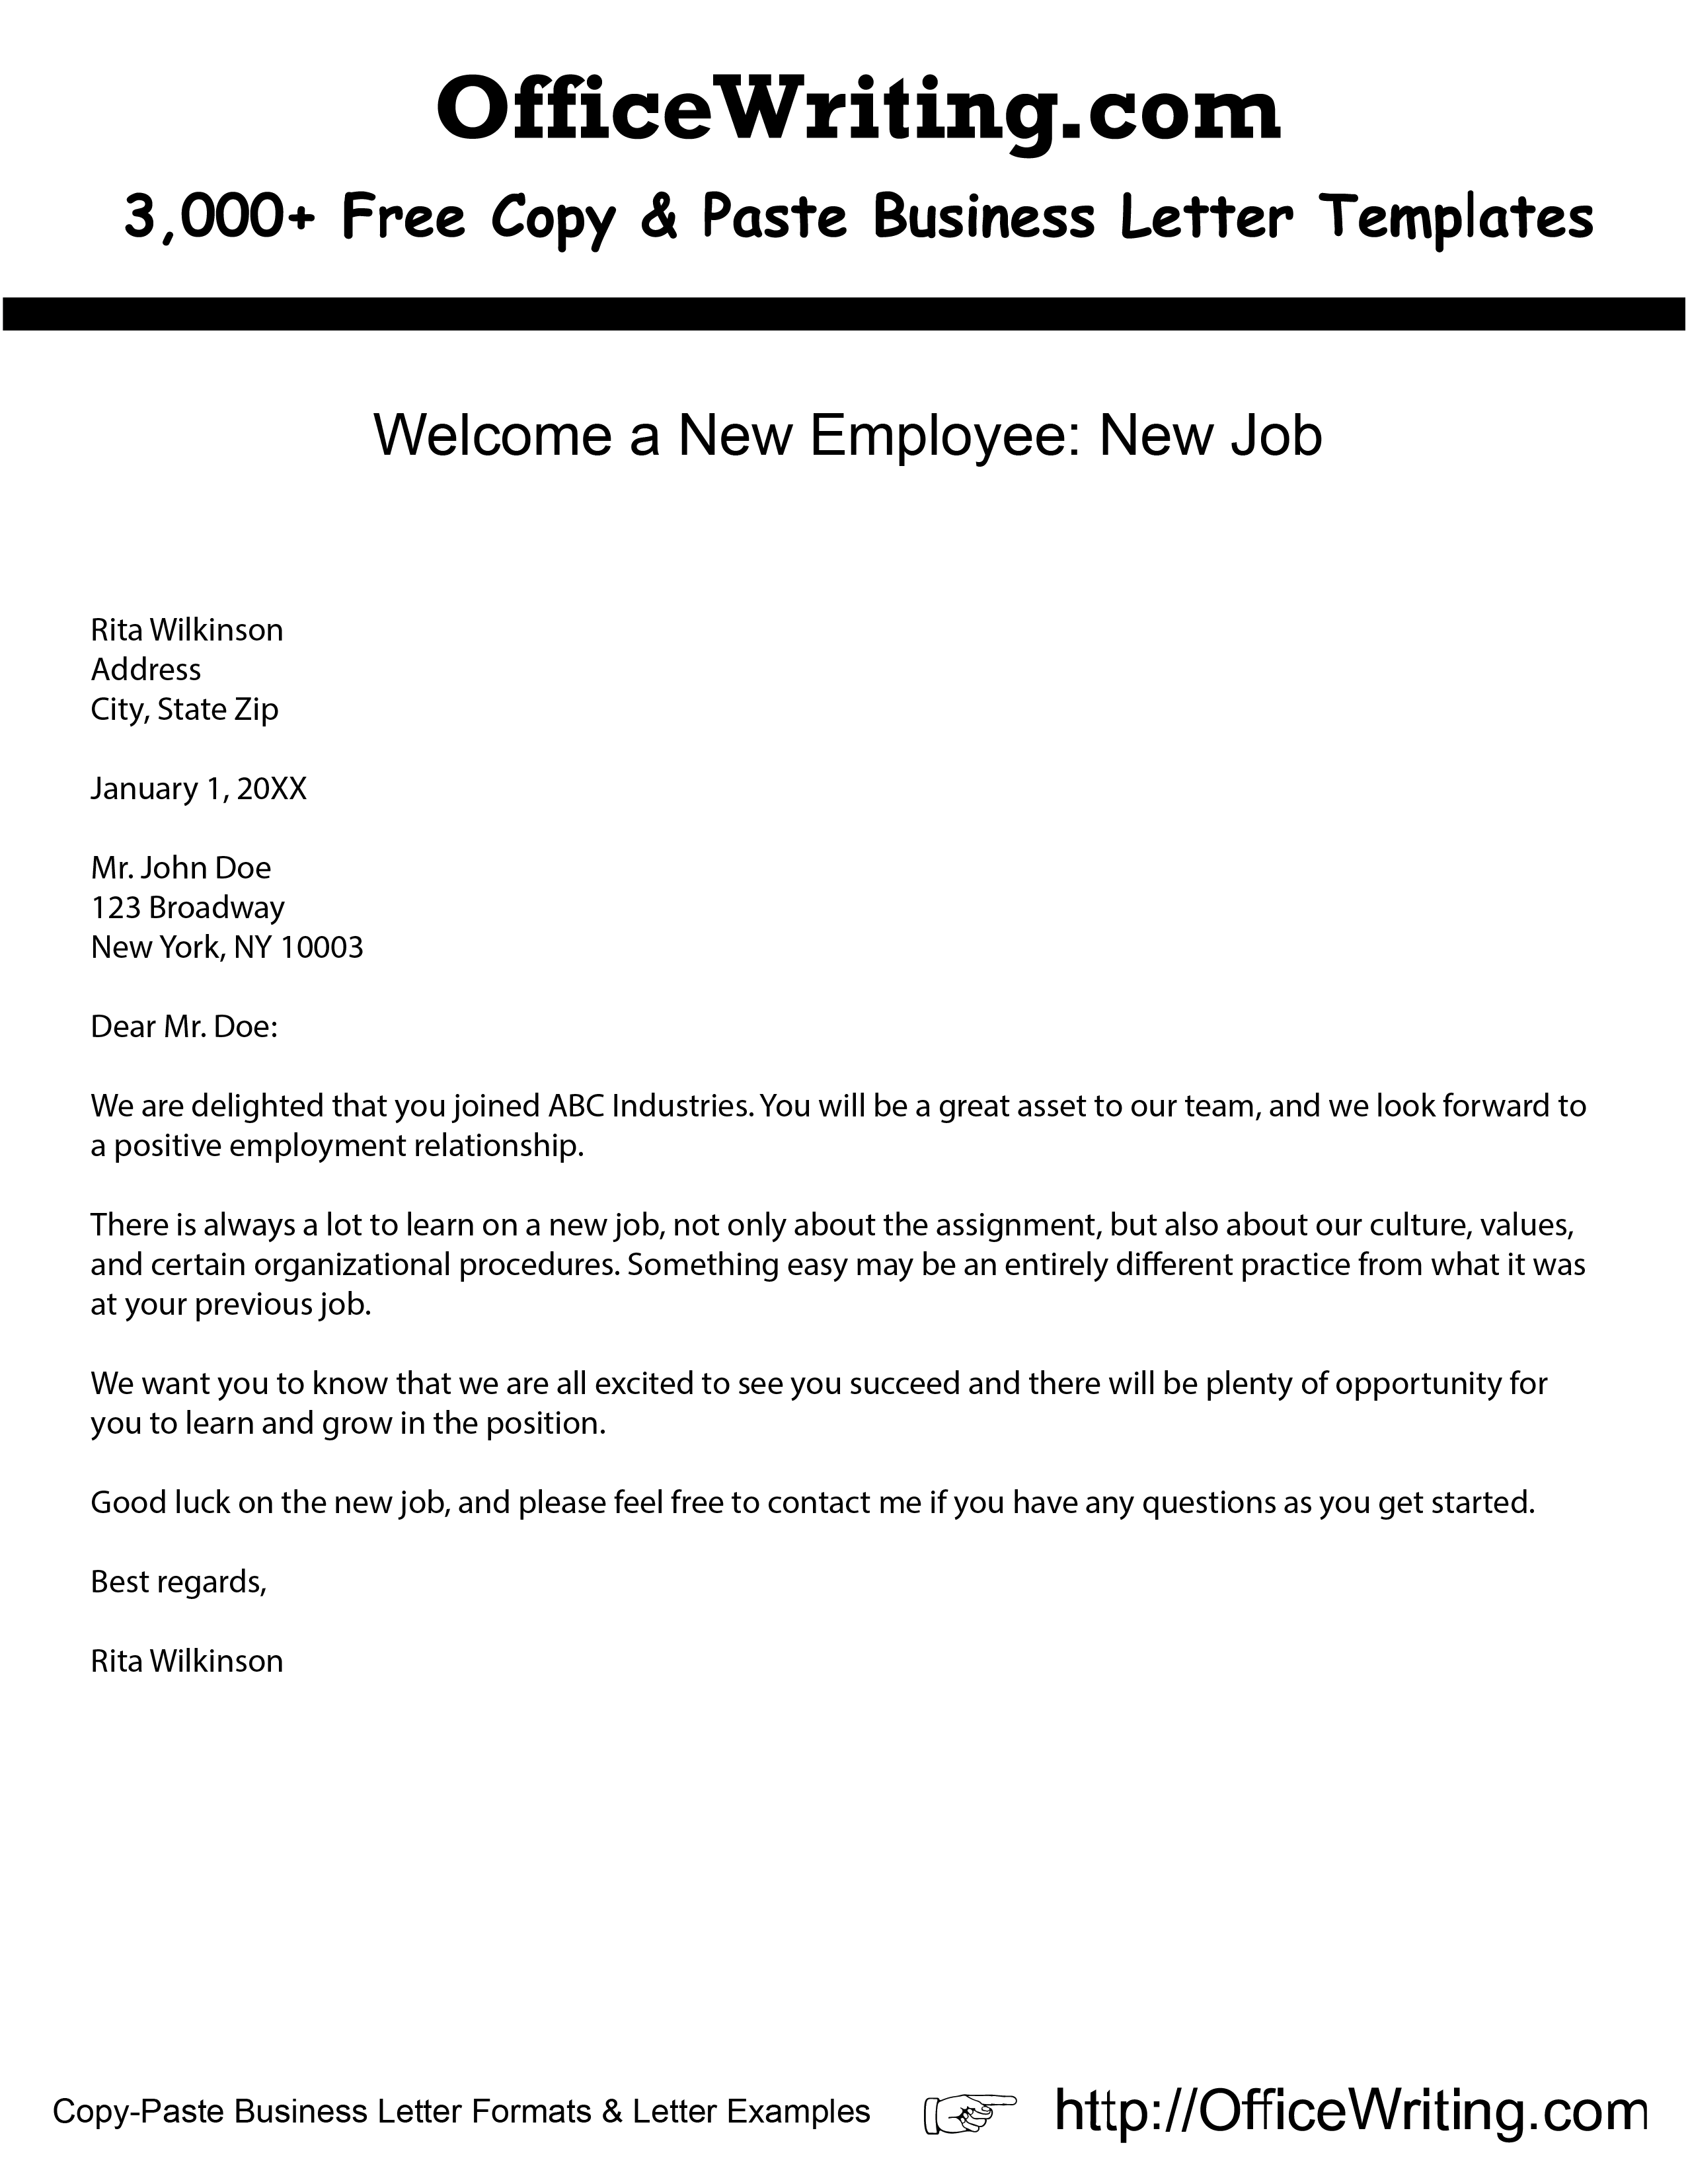 Welcome Letter Format For New Employee Hr Letter Formats Welcome Letter  Format For New Employee Hr